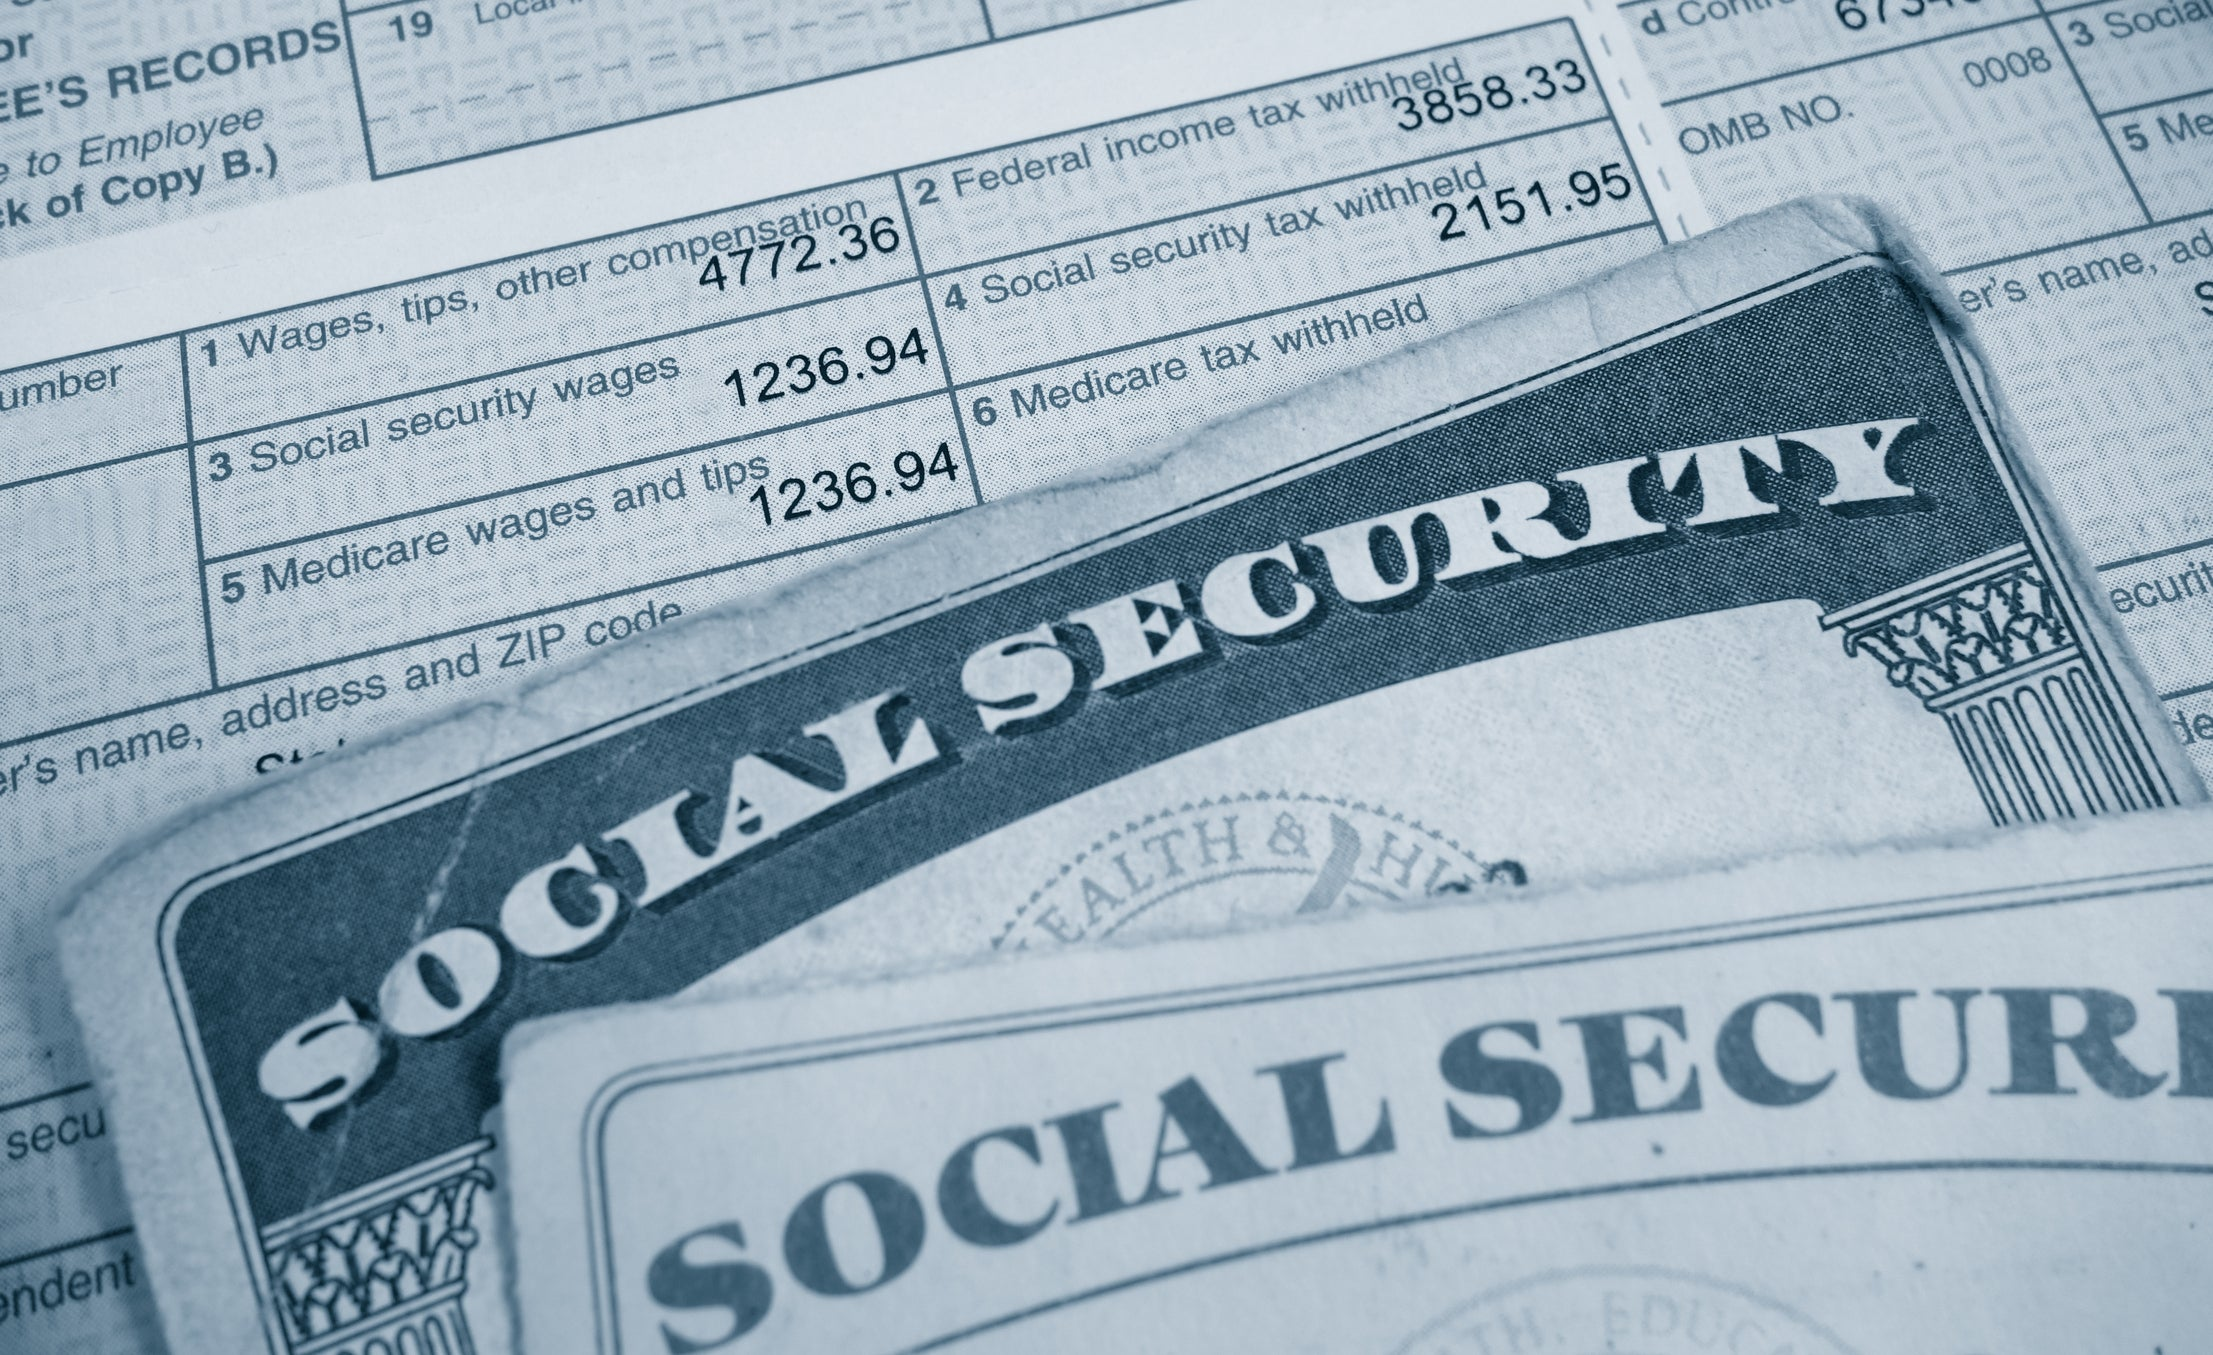 3 Hard To Believe Social Security Facts The Motley Fool